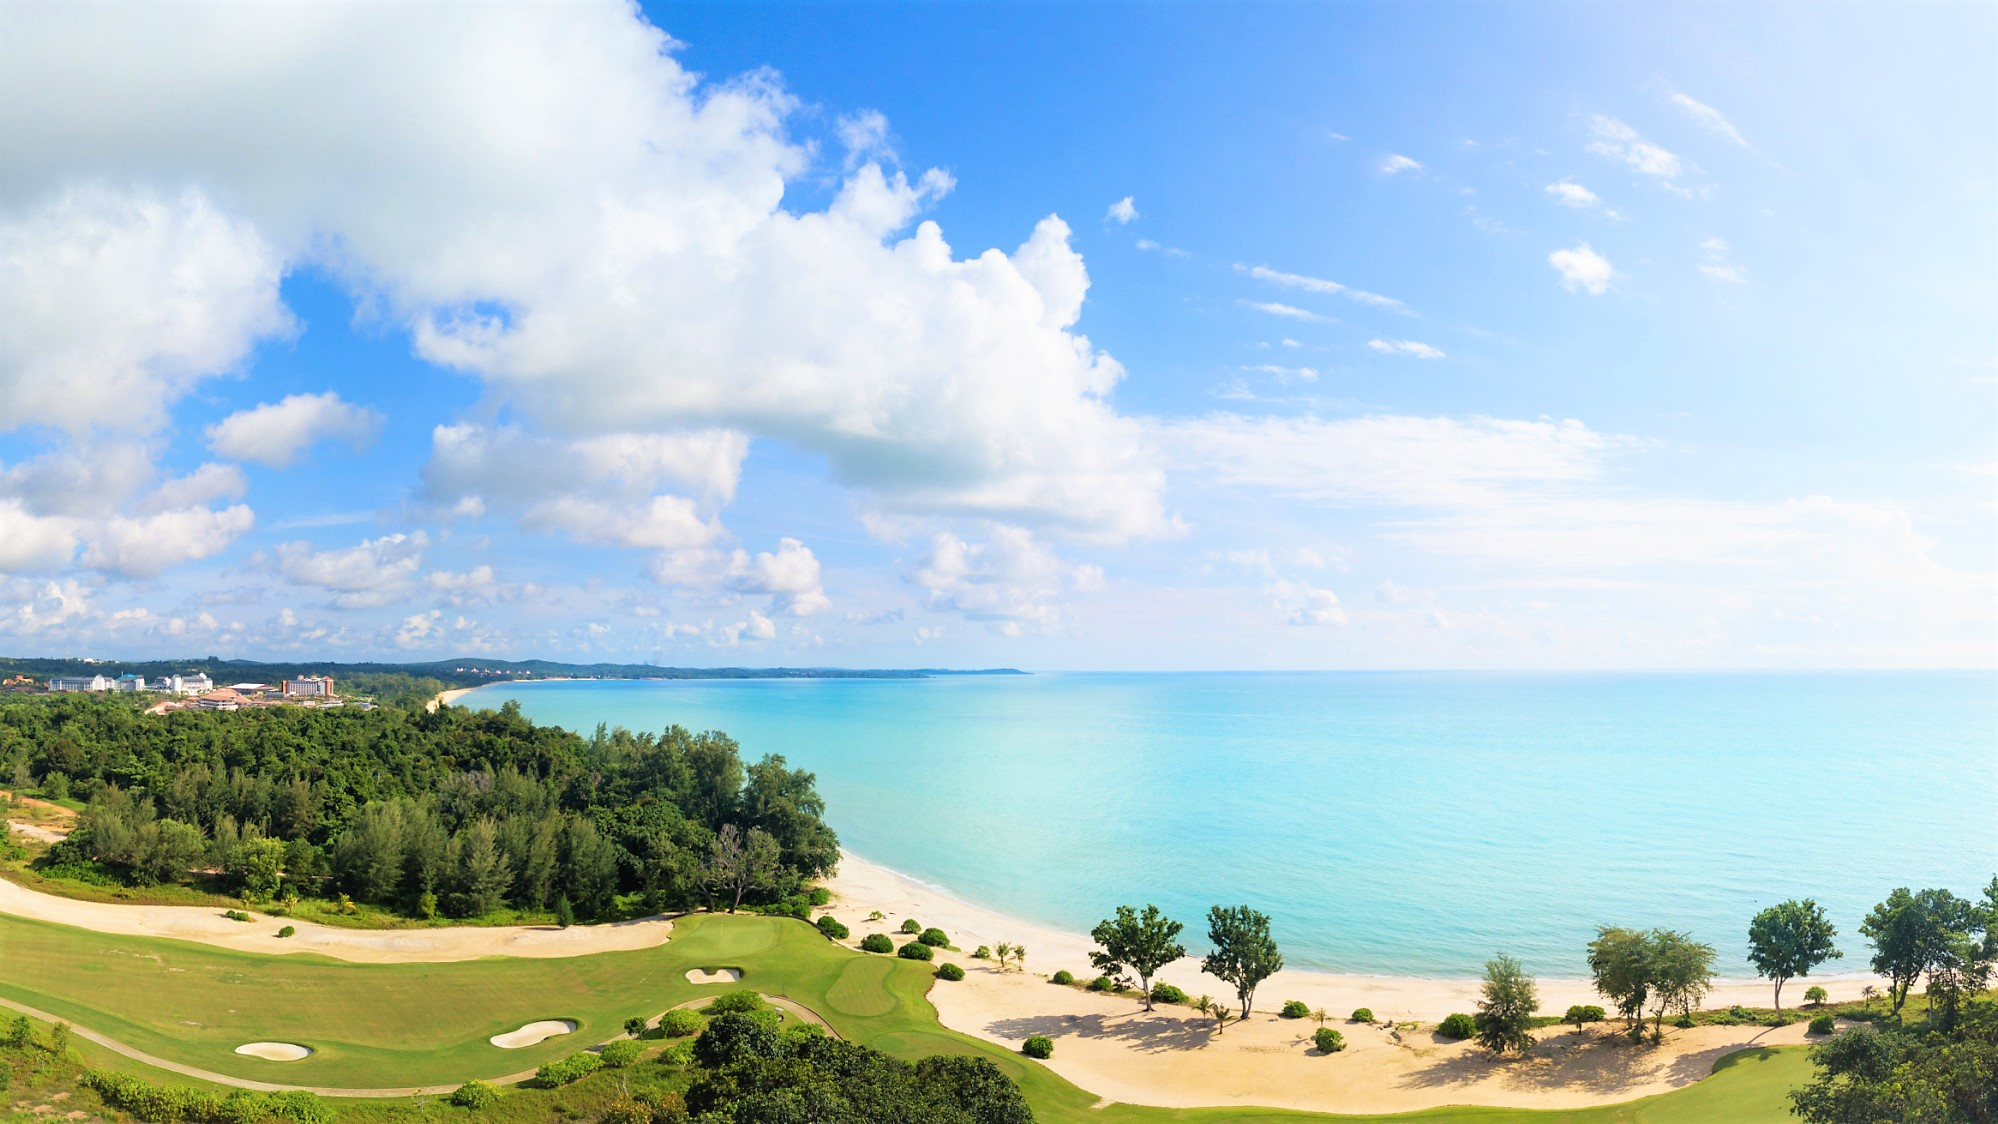 Desaru Coast Recognised as one of the World's Greatest Places 2021 by TIME Magazine